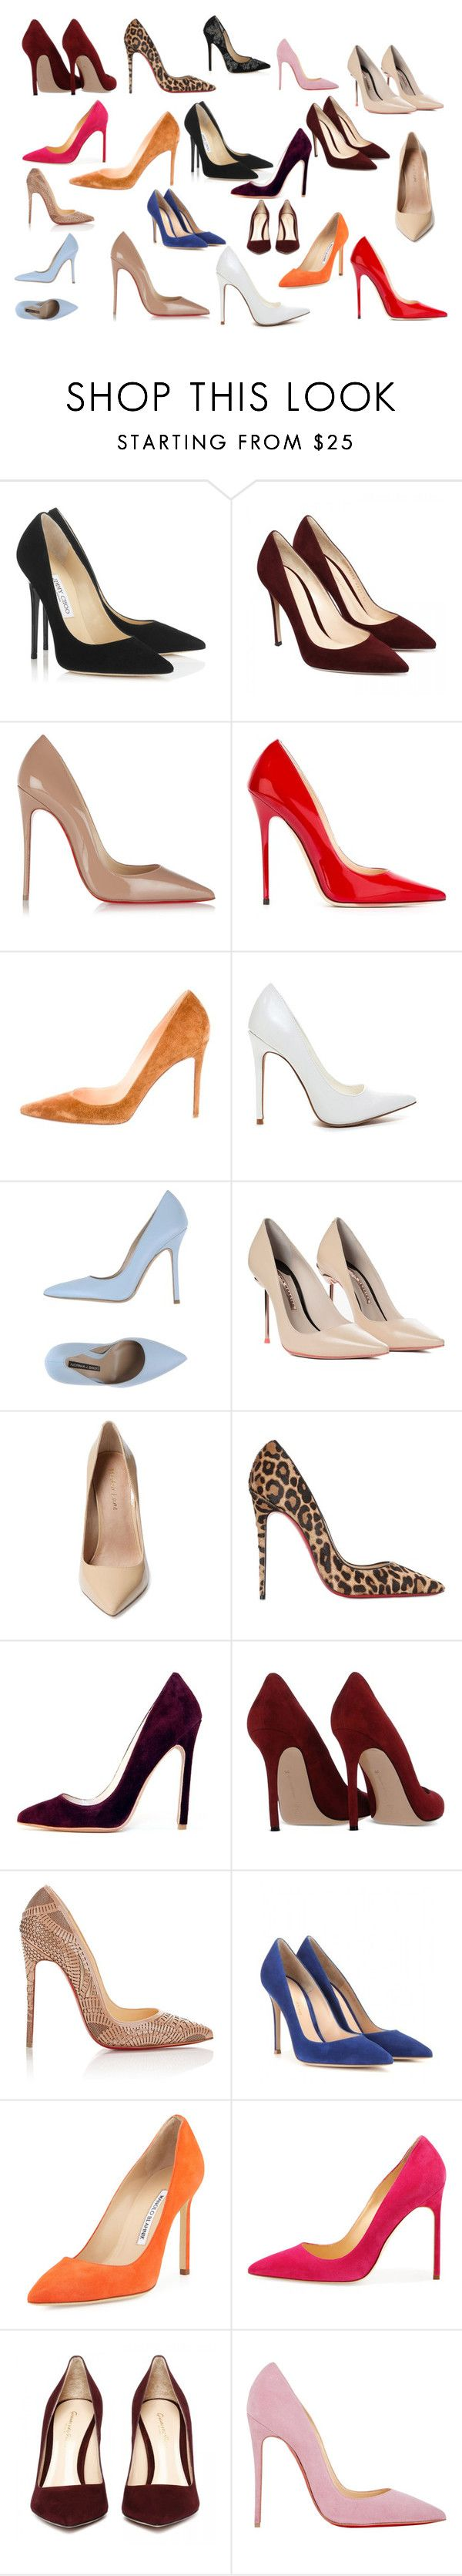 """""""Pump, pump pump it up"""" by rosesanders on Polyvore featuring Jimmy Choo, Christian Louboutin, Norma J.Baker, Sophia Webster, Maiden Lane, Gianvito Rossi and Manolo Blahnik"""